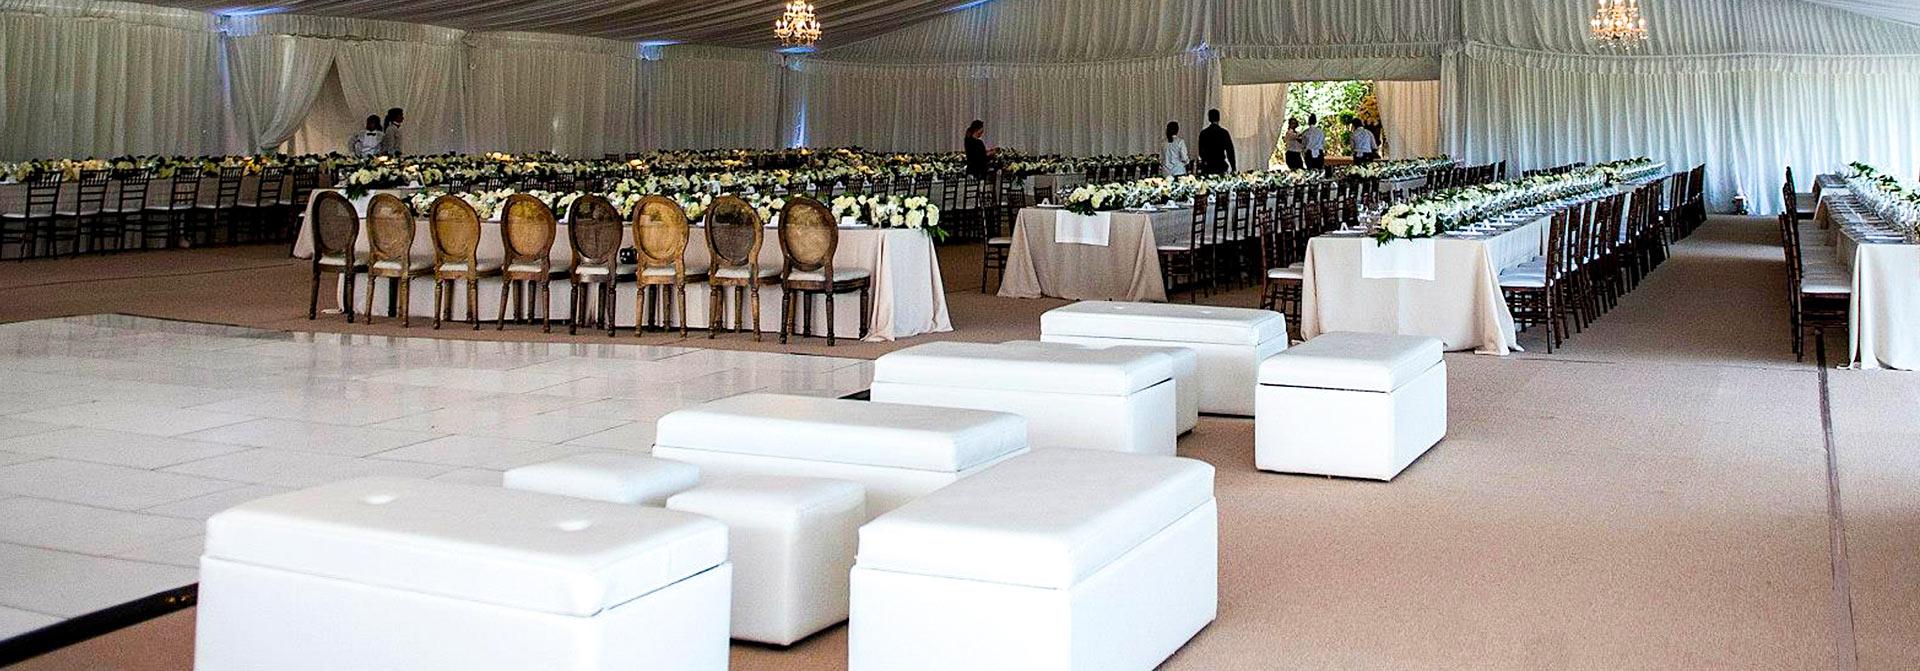 From custom event tents to standard rentals, Chattanooga Tent can give you what you envision for your special event.